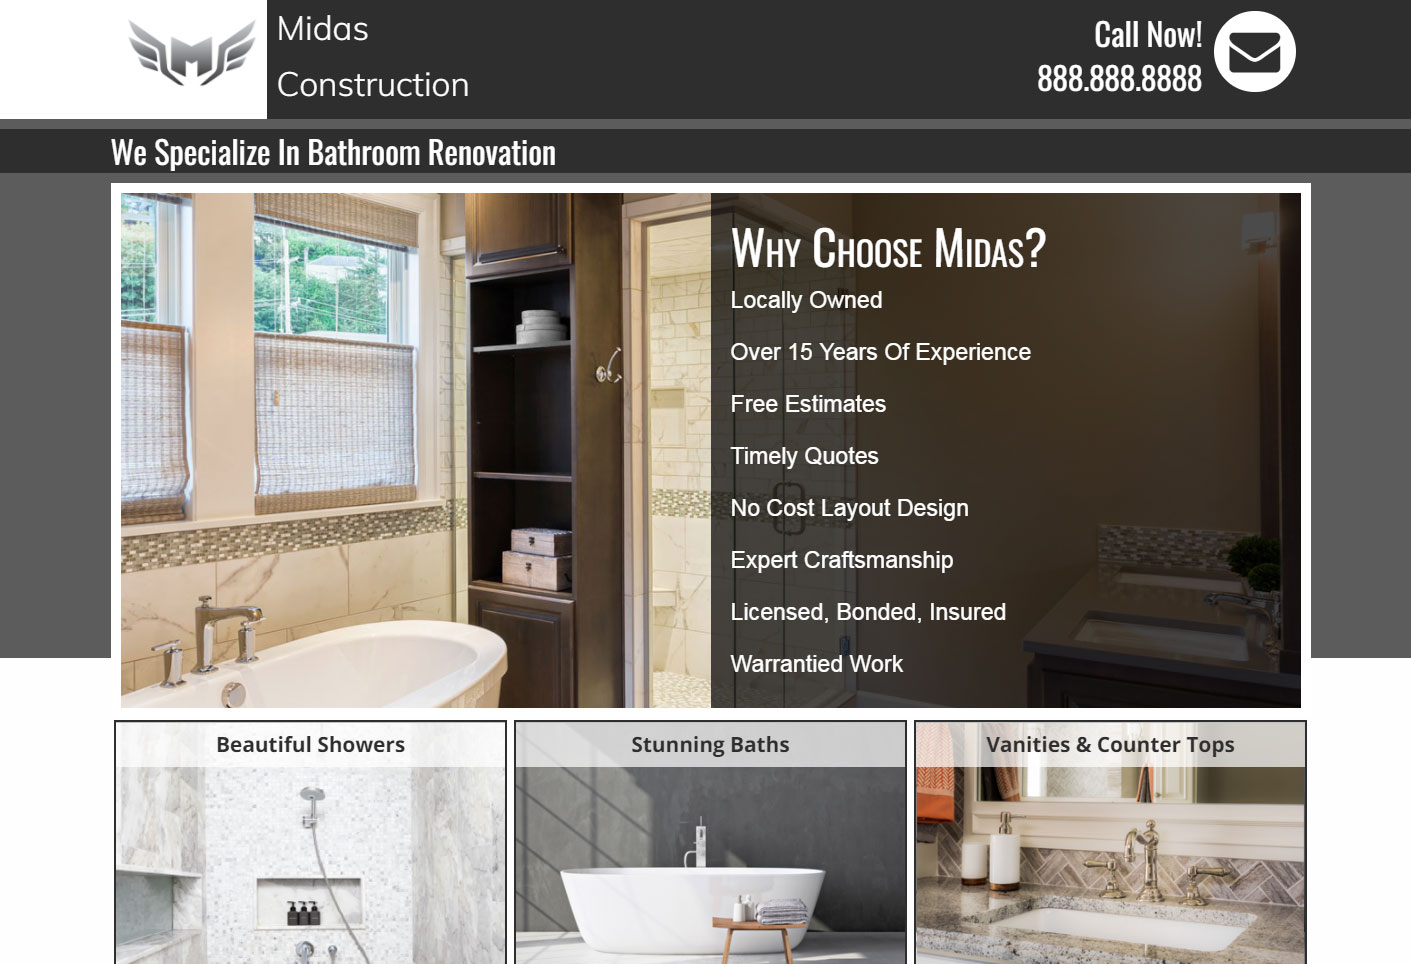 Bathroom construction company's landing page